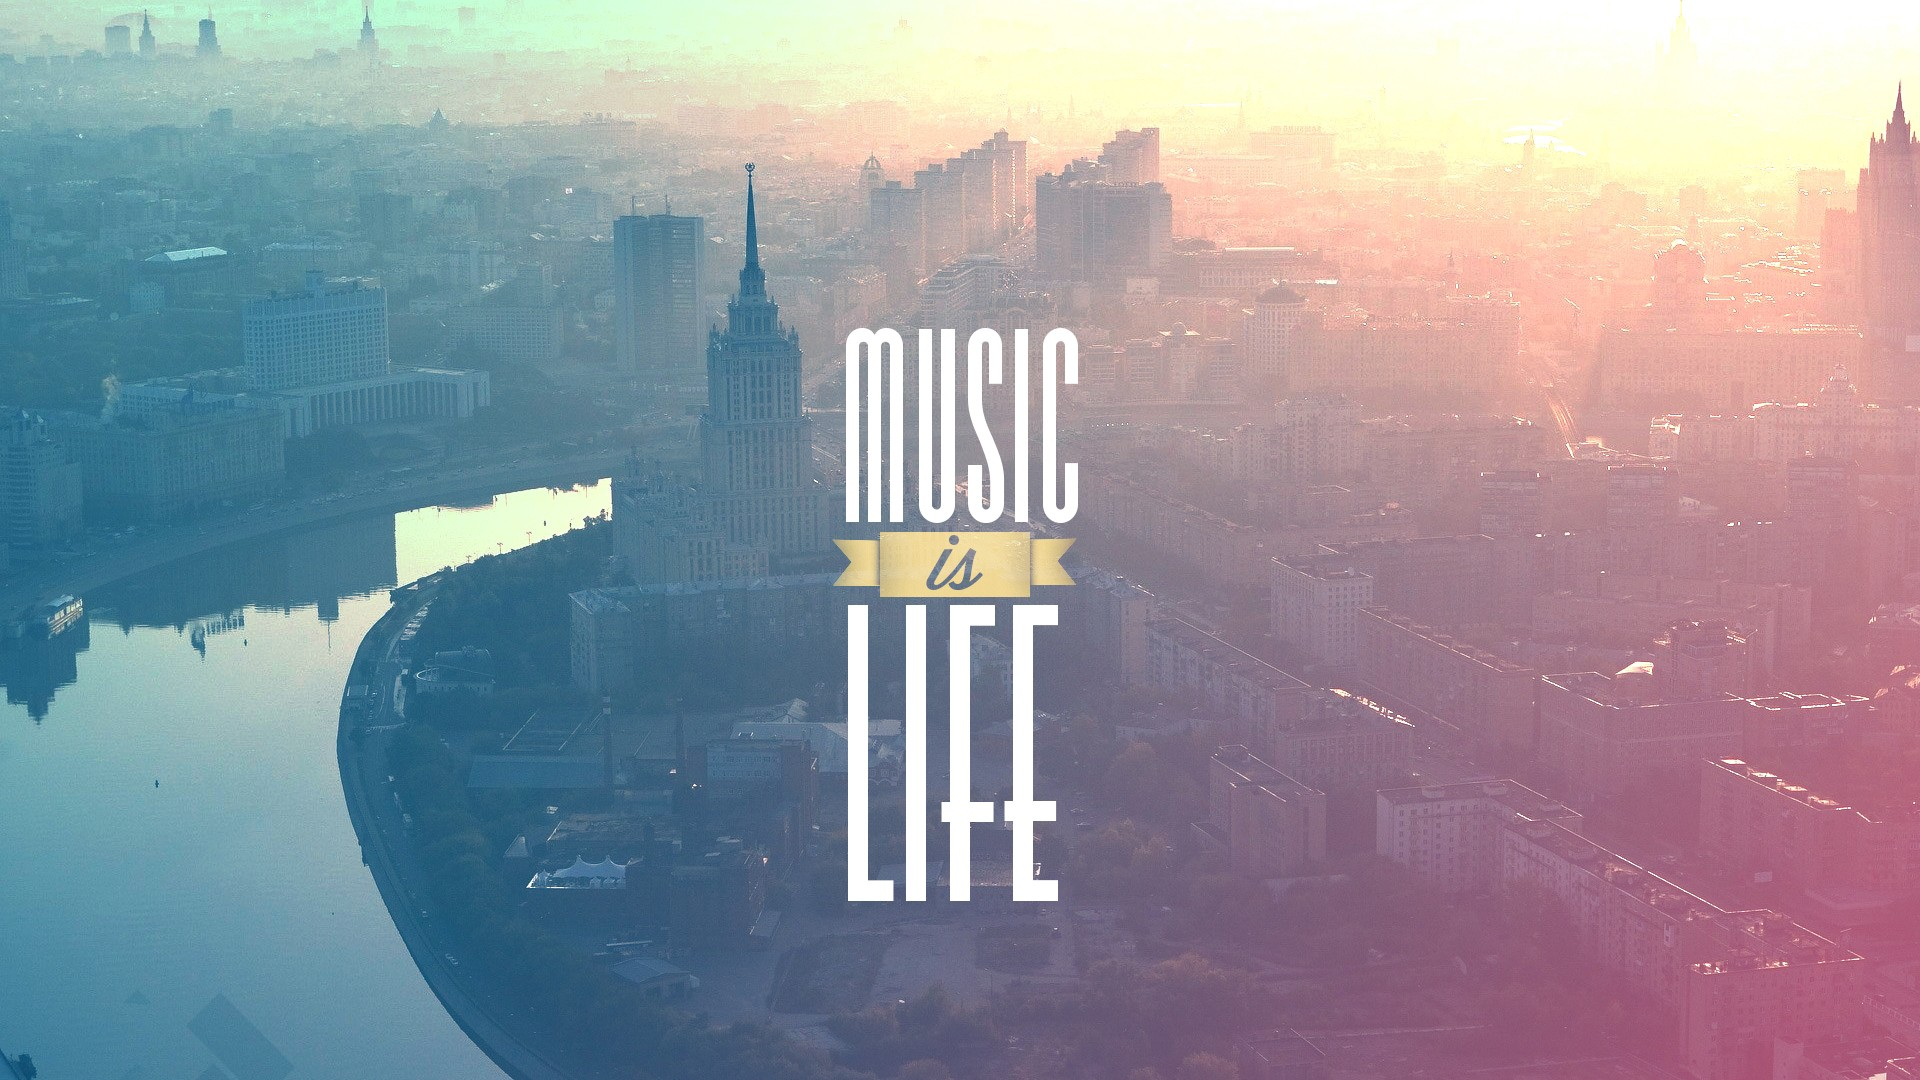 General 1920x1080 building architecture landscape music typography cityscape river filter Music is Life sunlight